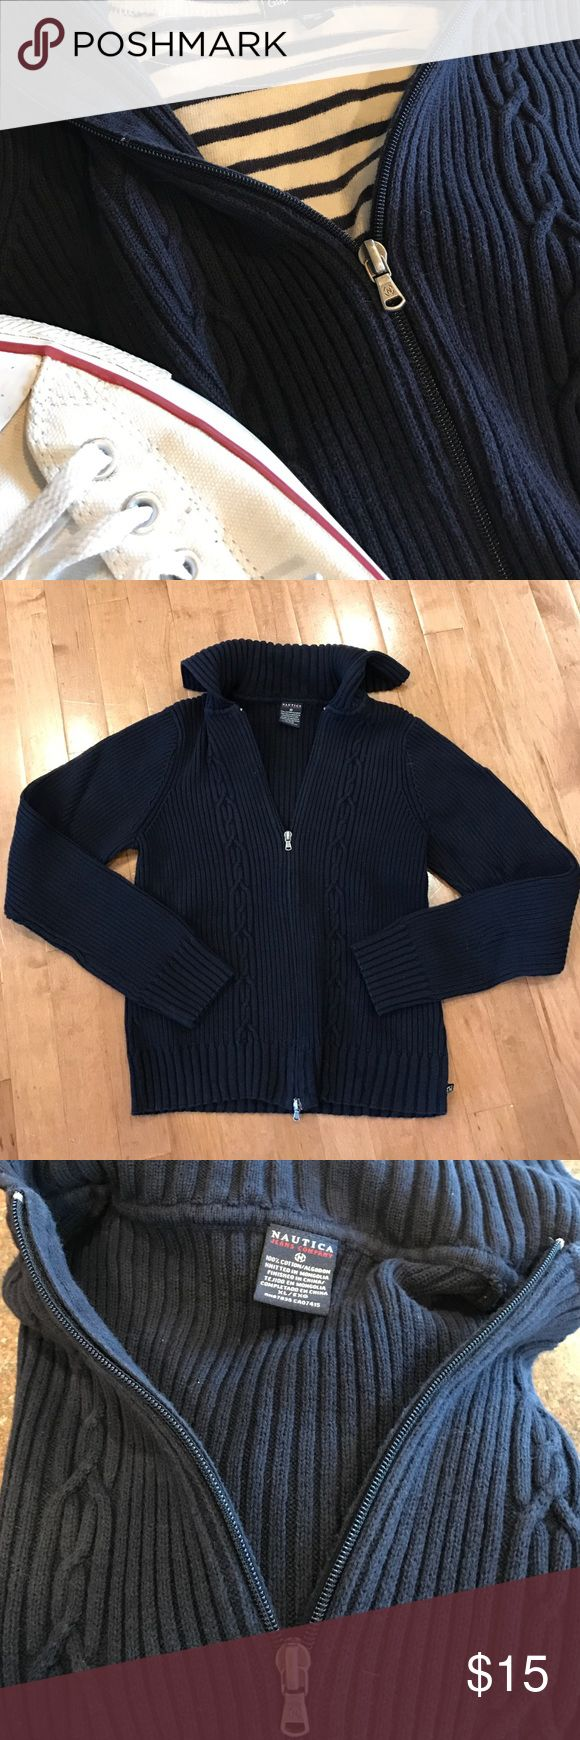 Nautical zip up navy blue sweater women's XL Classic nautical looking navy sweater by Nautica, a great layering piece with zip up front , comfortable ribbed knit, and cool color. Women's size XL Nautica Sweaters Cardigans